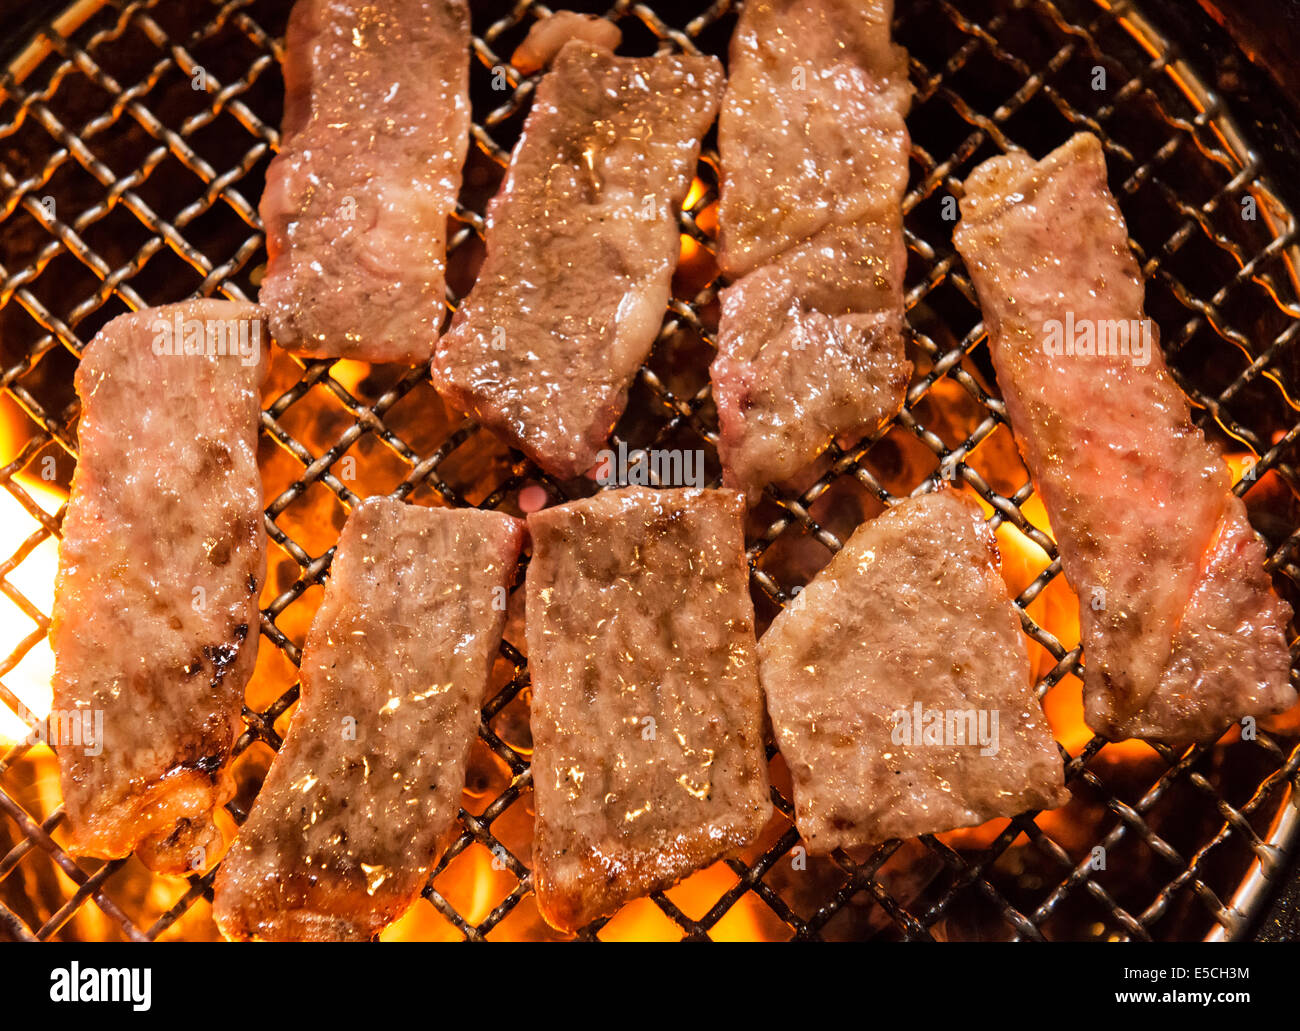 Closeup Of Yakiniku Japanese Barbecue Beef Being Cooked On Fire At A Stock Photo Alamy